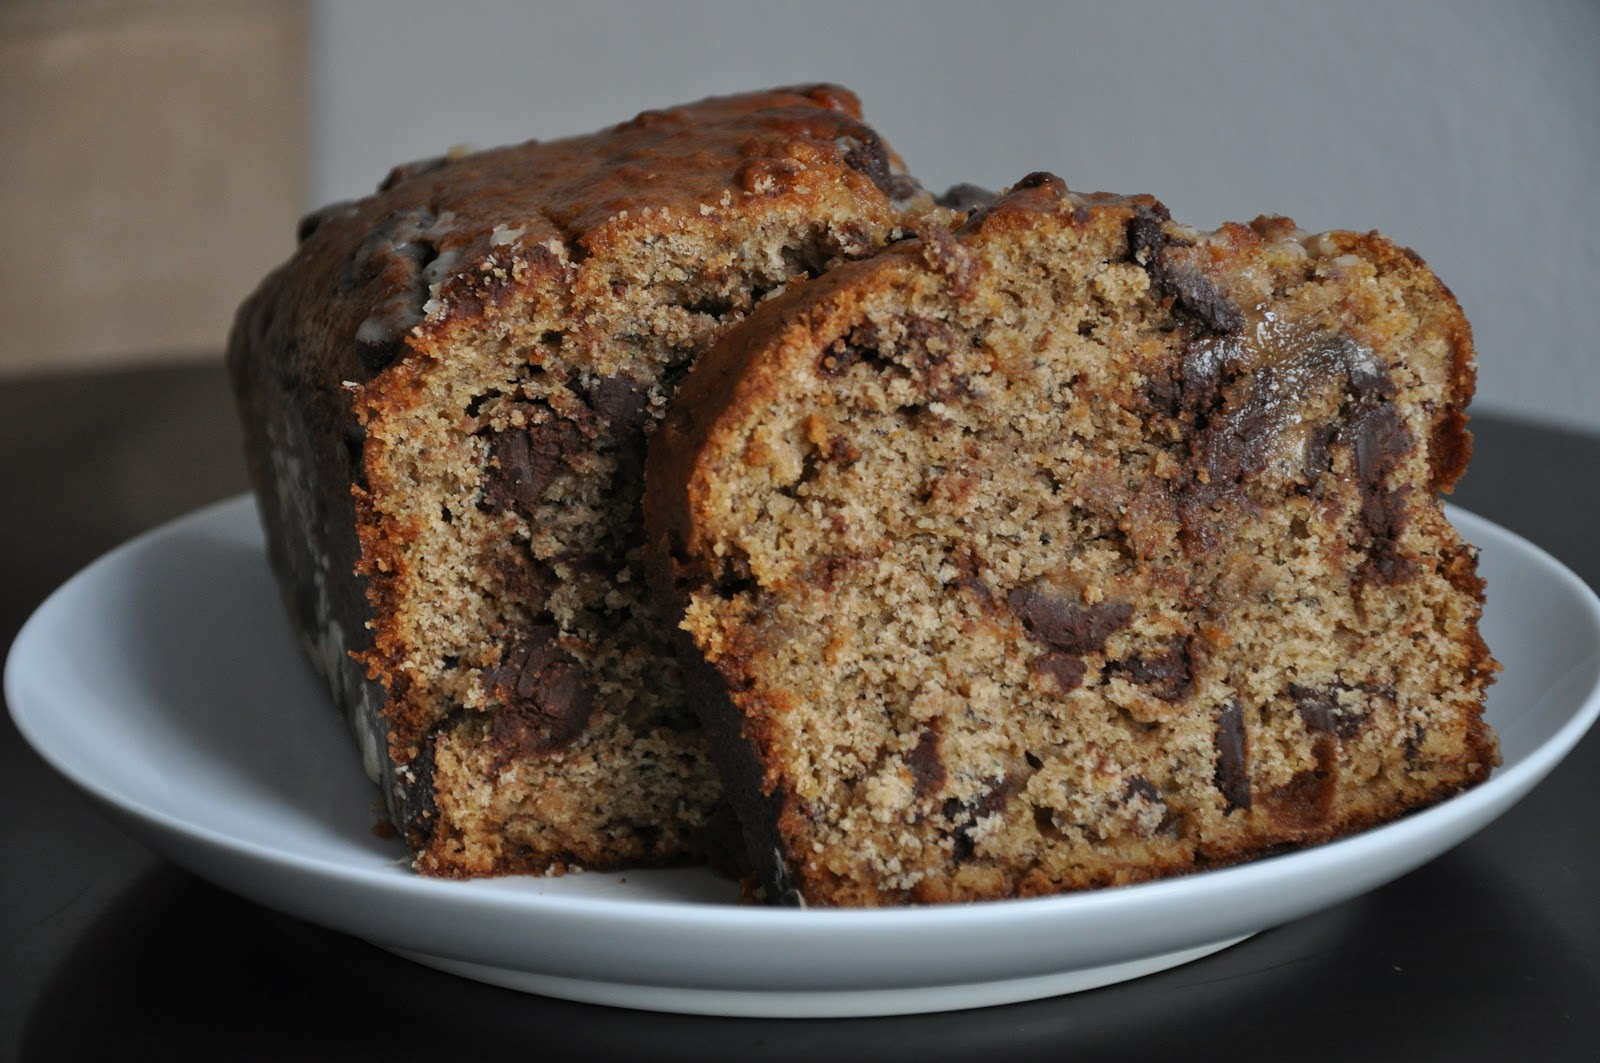 Slice of Rice: Lemony Olive Oil Banana Bread